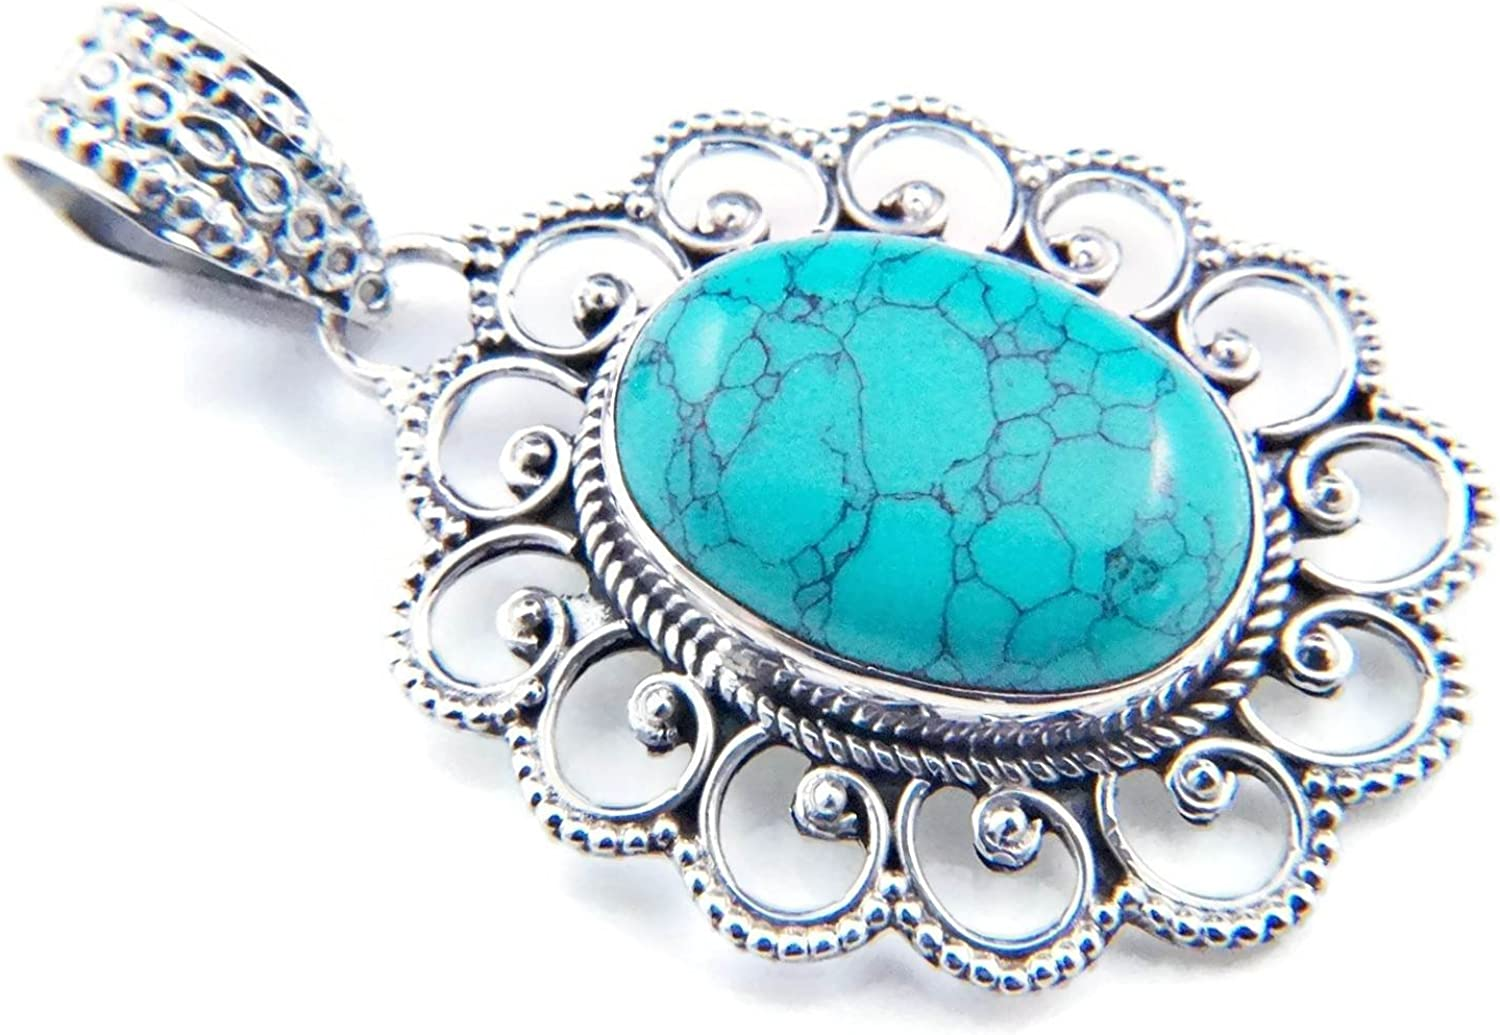 NO:MAH 83-15 Pendentif argent 925 sterling turquoise